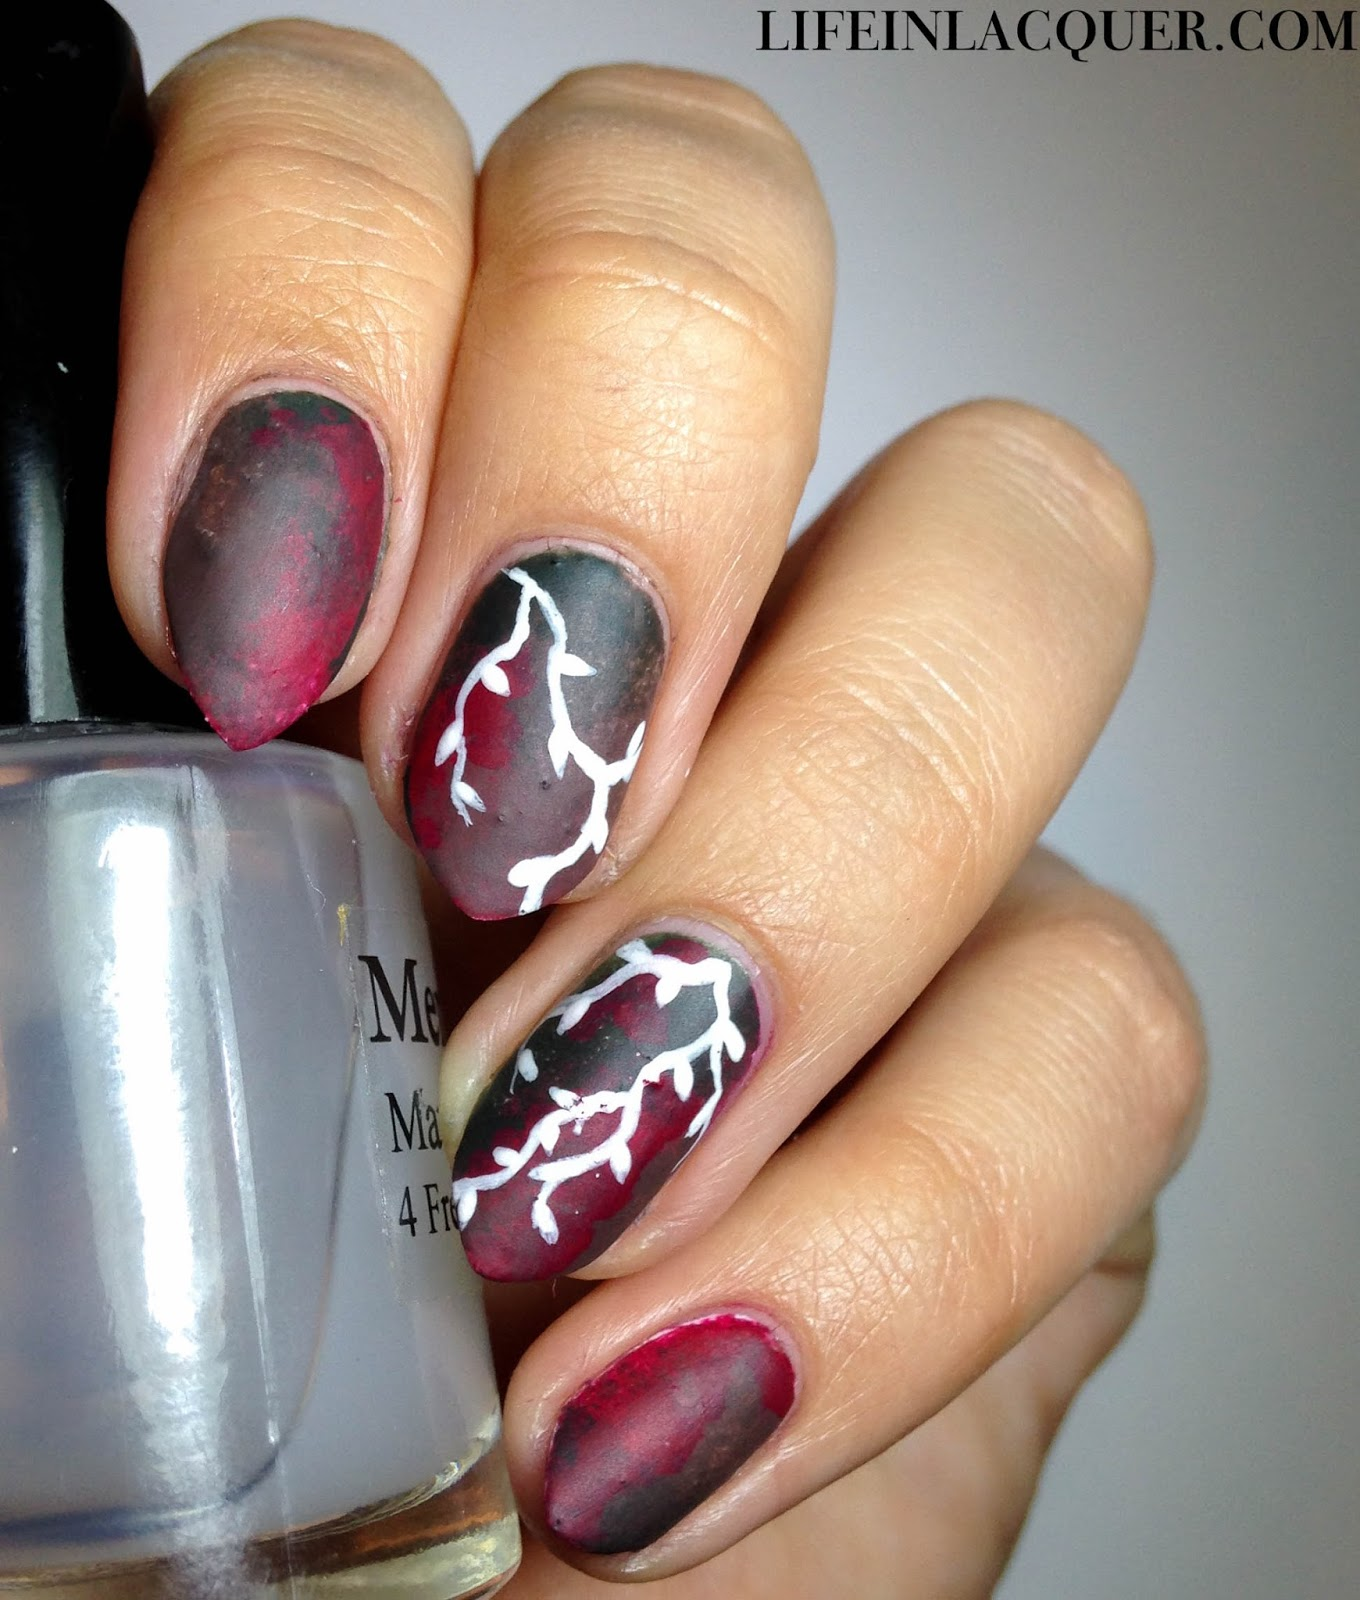 Life in Lacquer: Autumn Leaves Nail Art